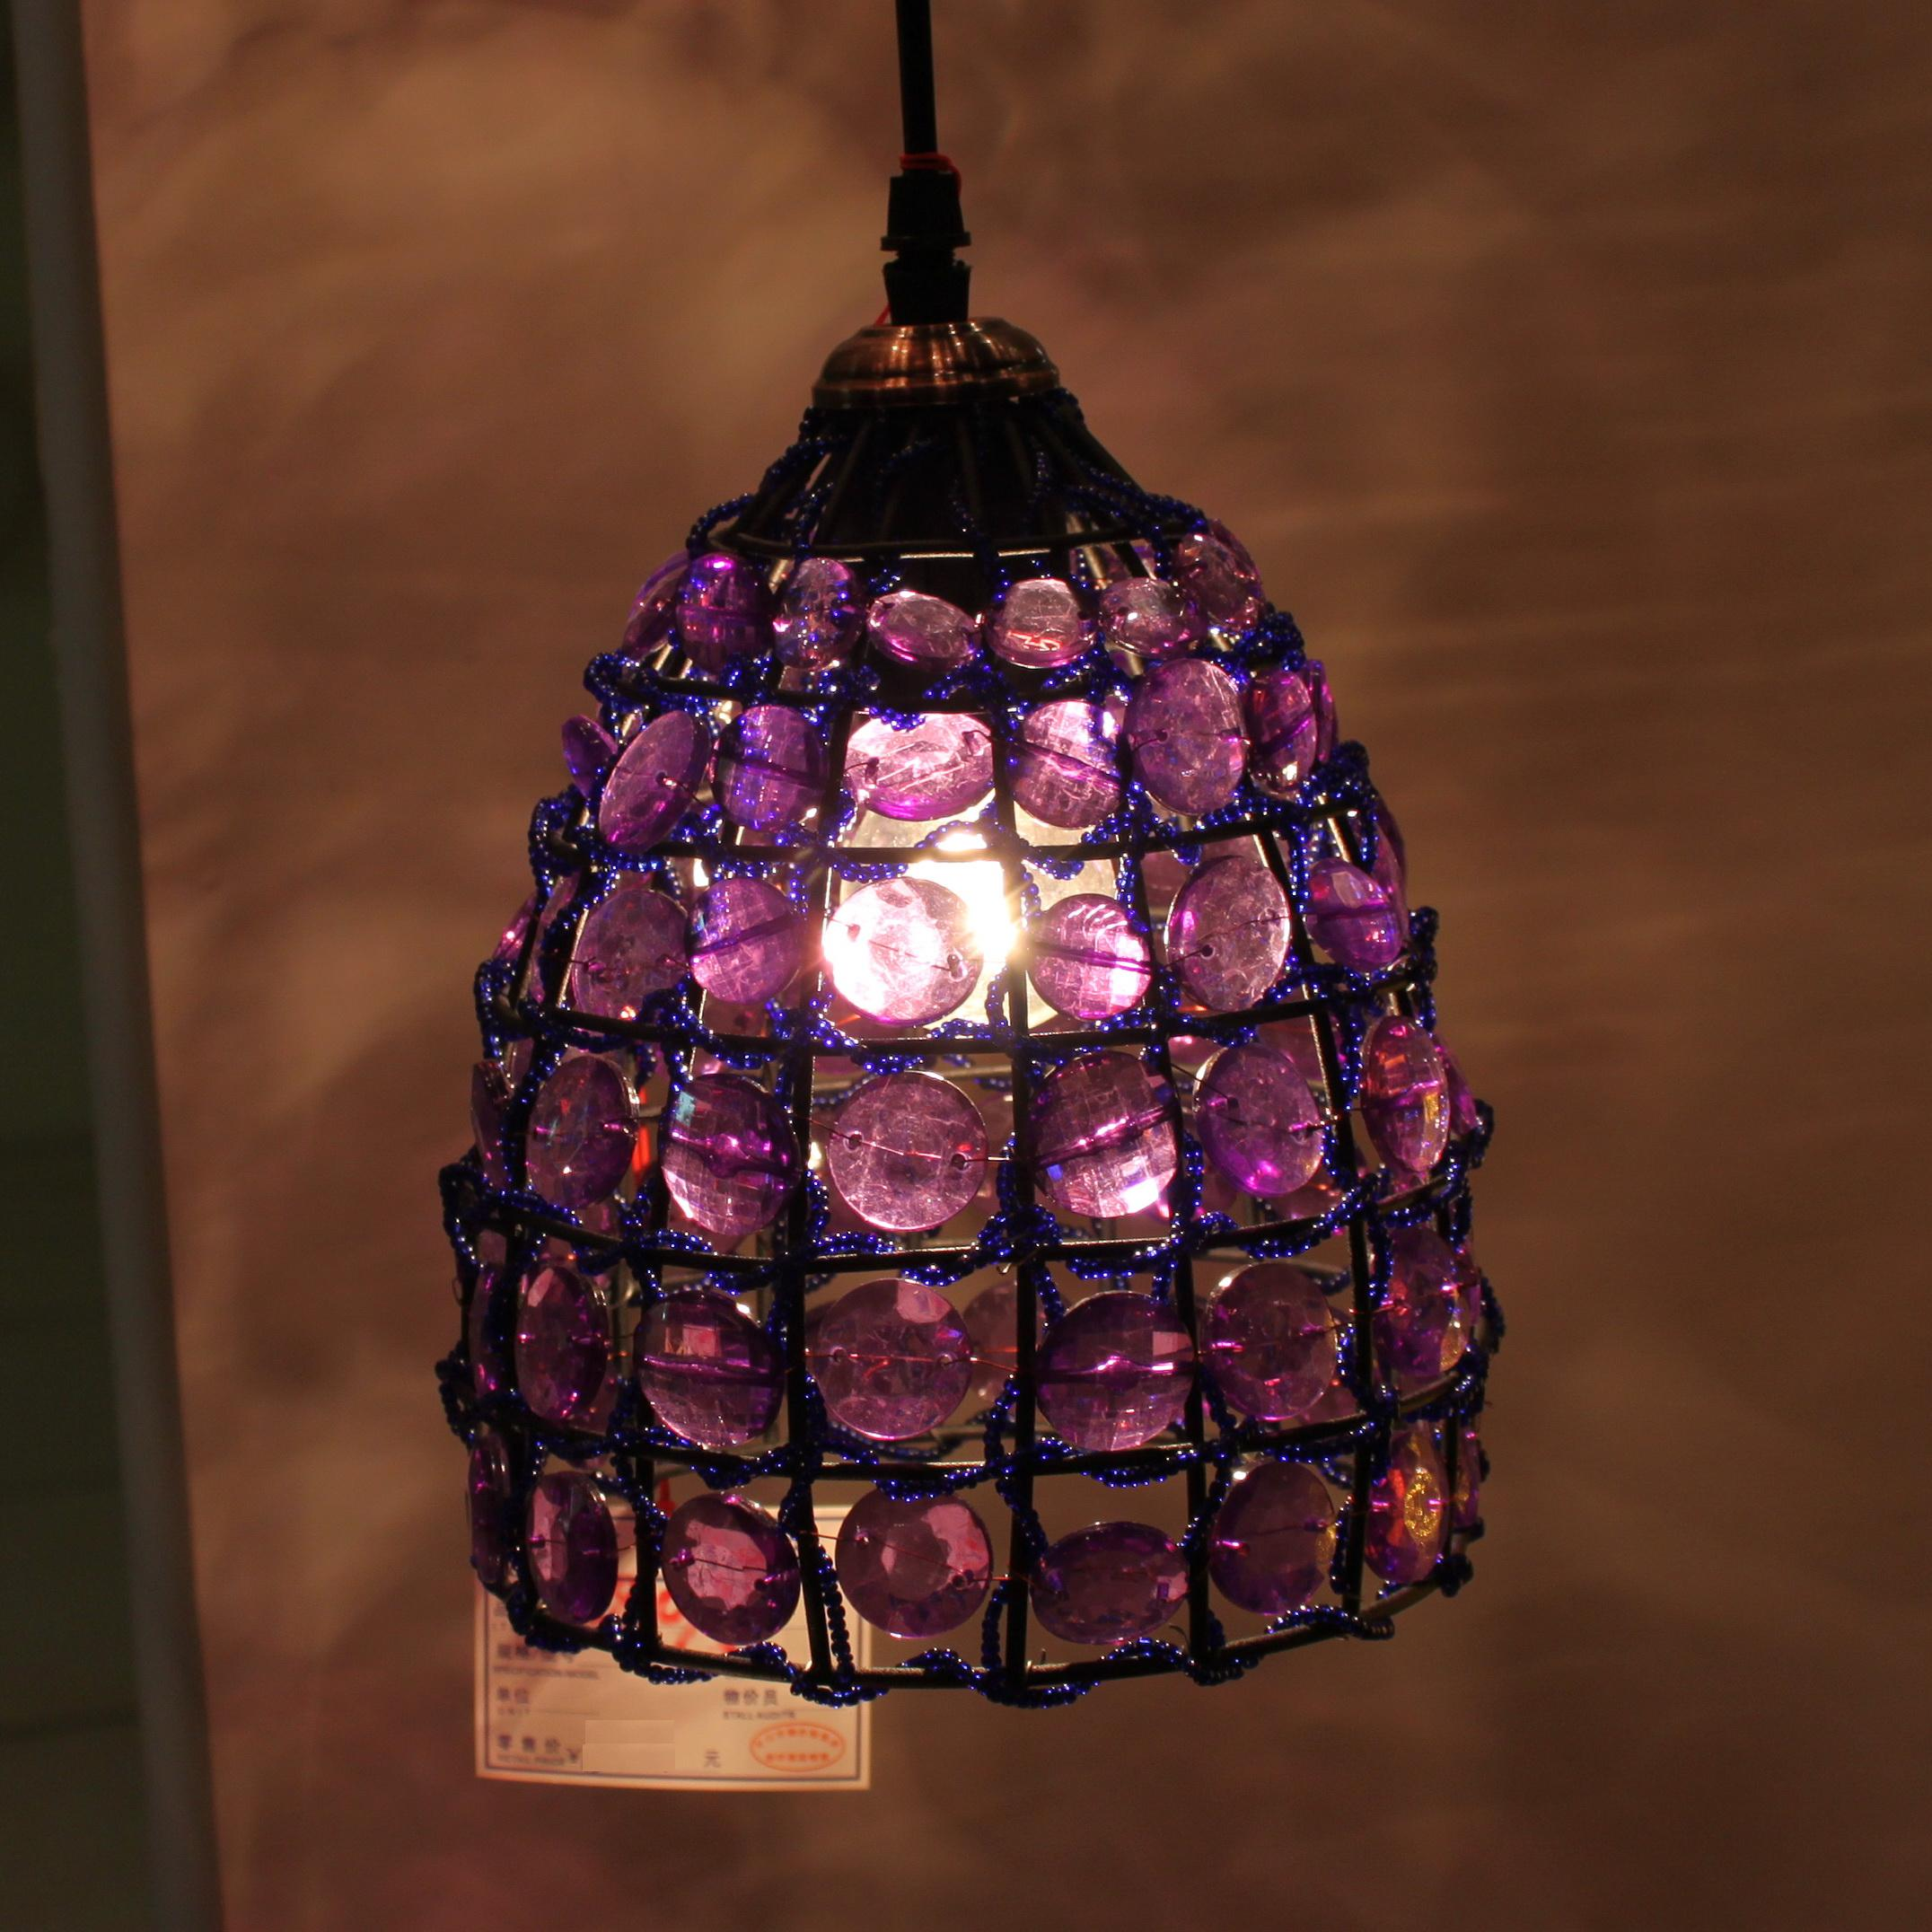 Small Lamp Shades : Small lamp shades for chandeliers homesfeed